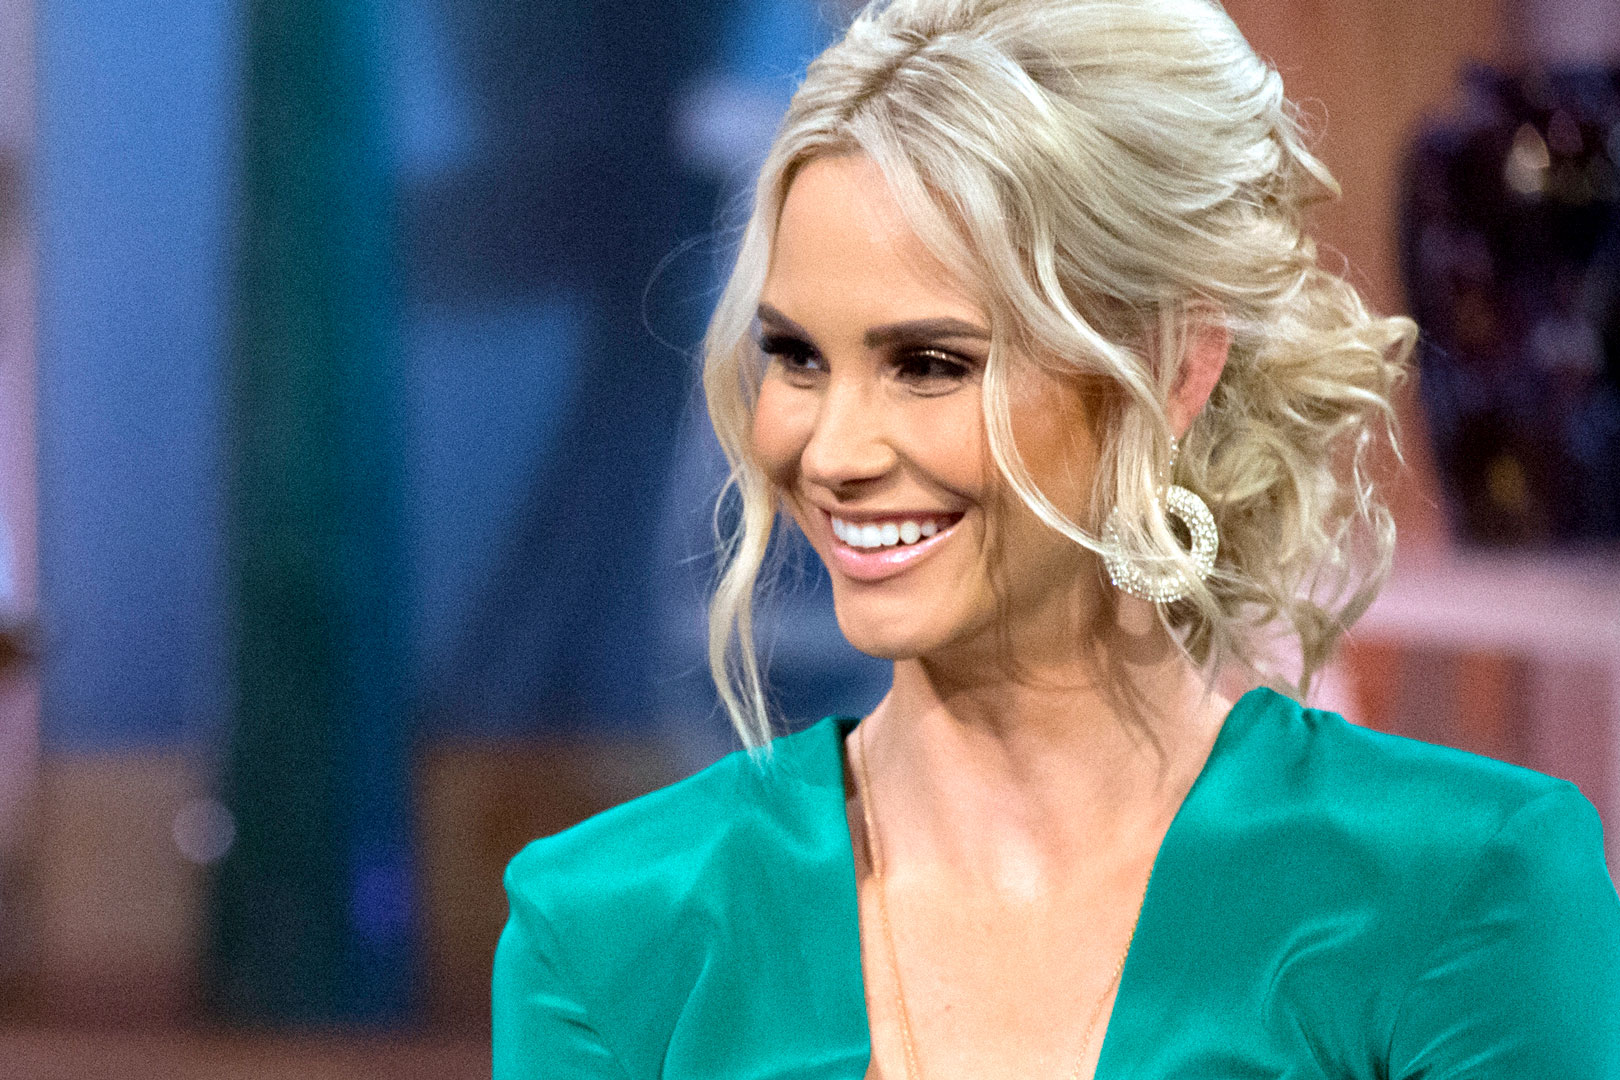 Meghan King Edmonds at The Real Housewives of Orange County Season 12 Reunion